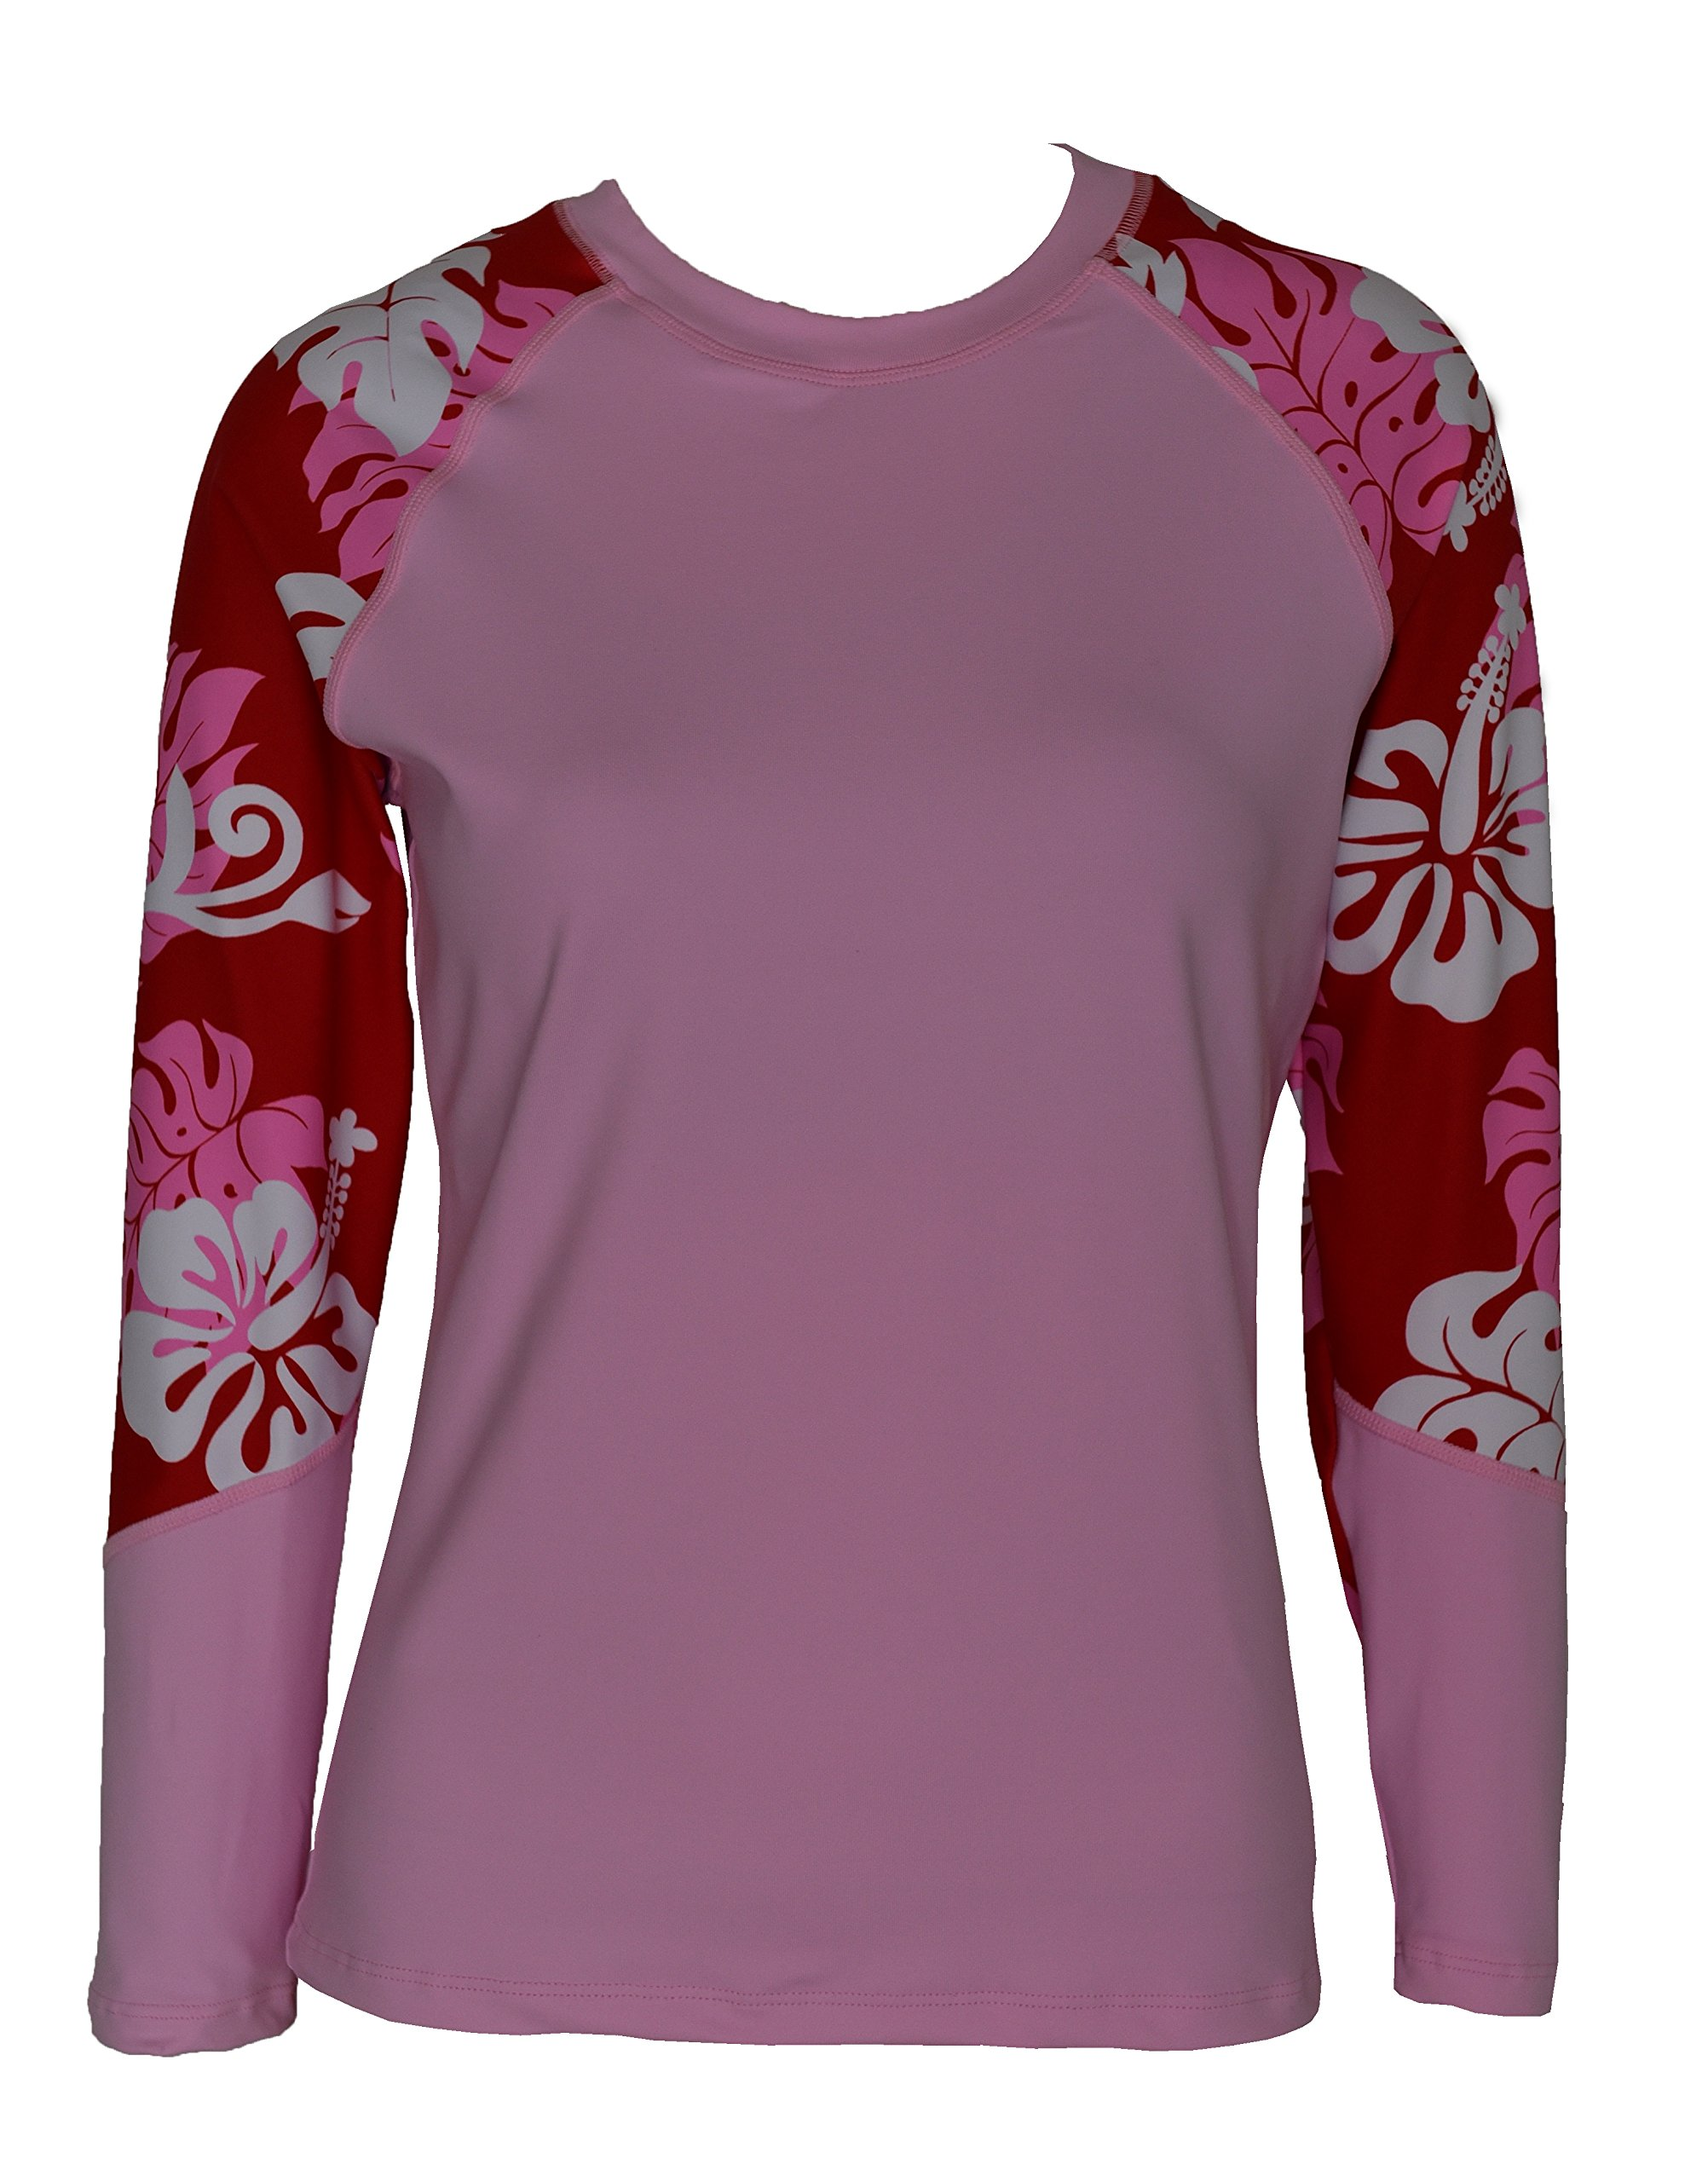 Private Island Hawaii UV Women Rash Guard Swim Yoga Active Workout Long Sleeve (XS, PwRW-RSRGT) by Private Island